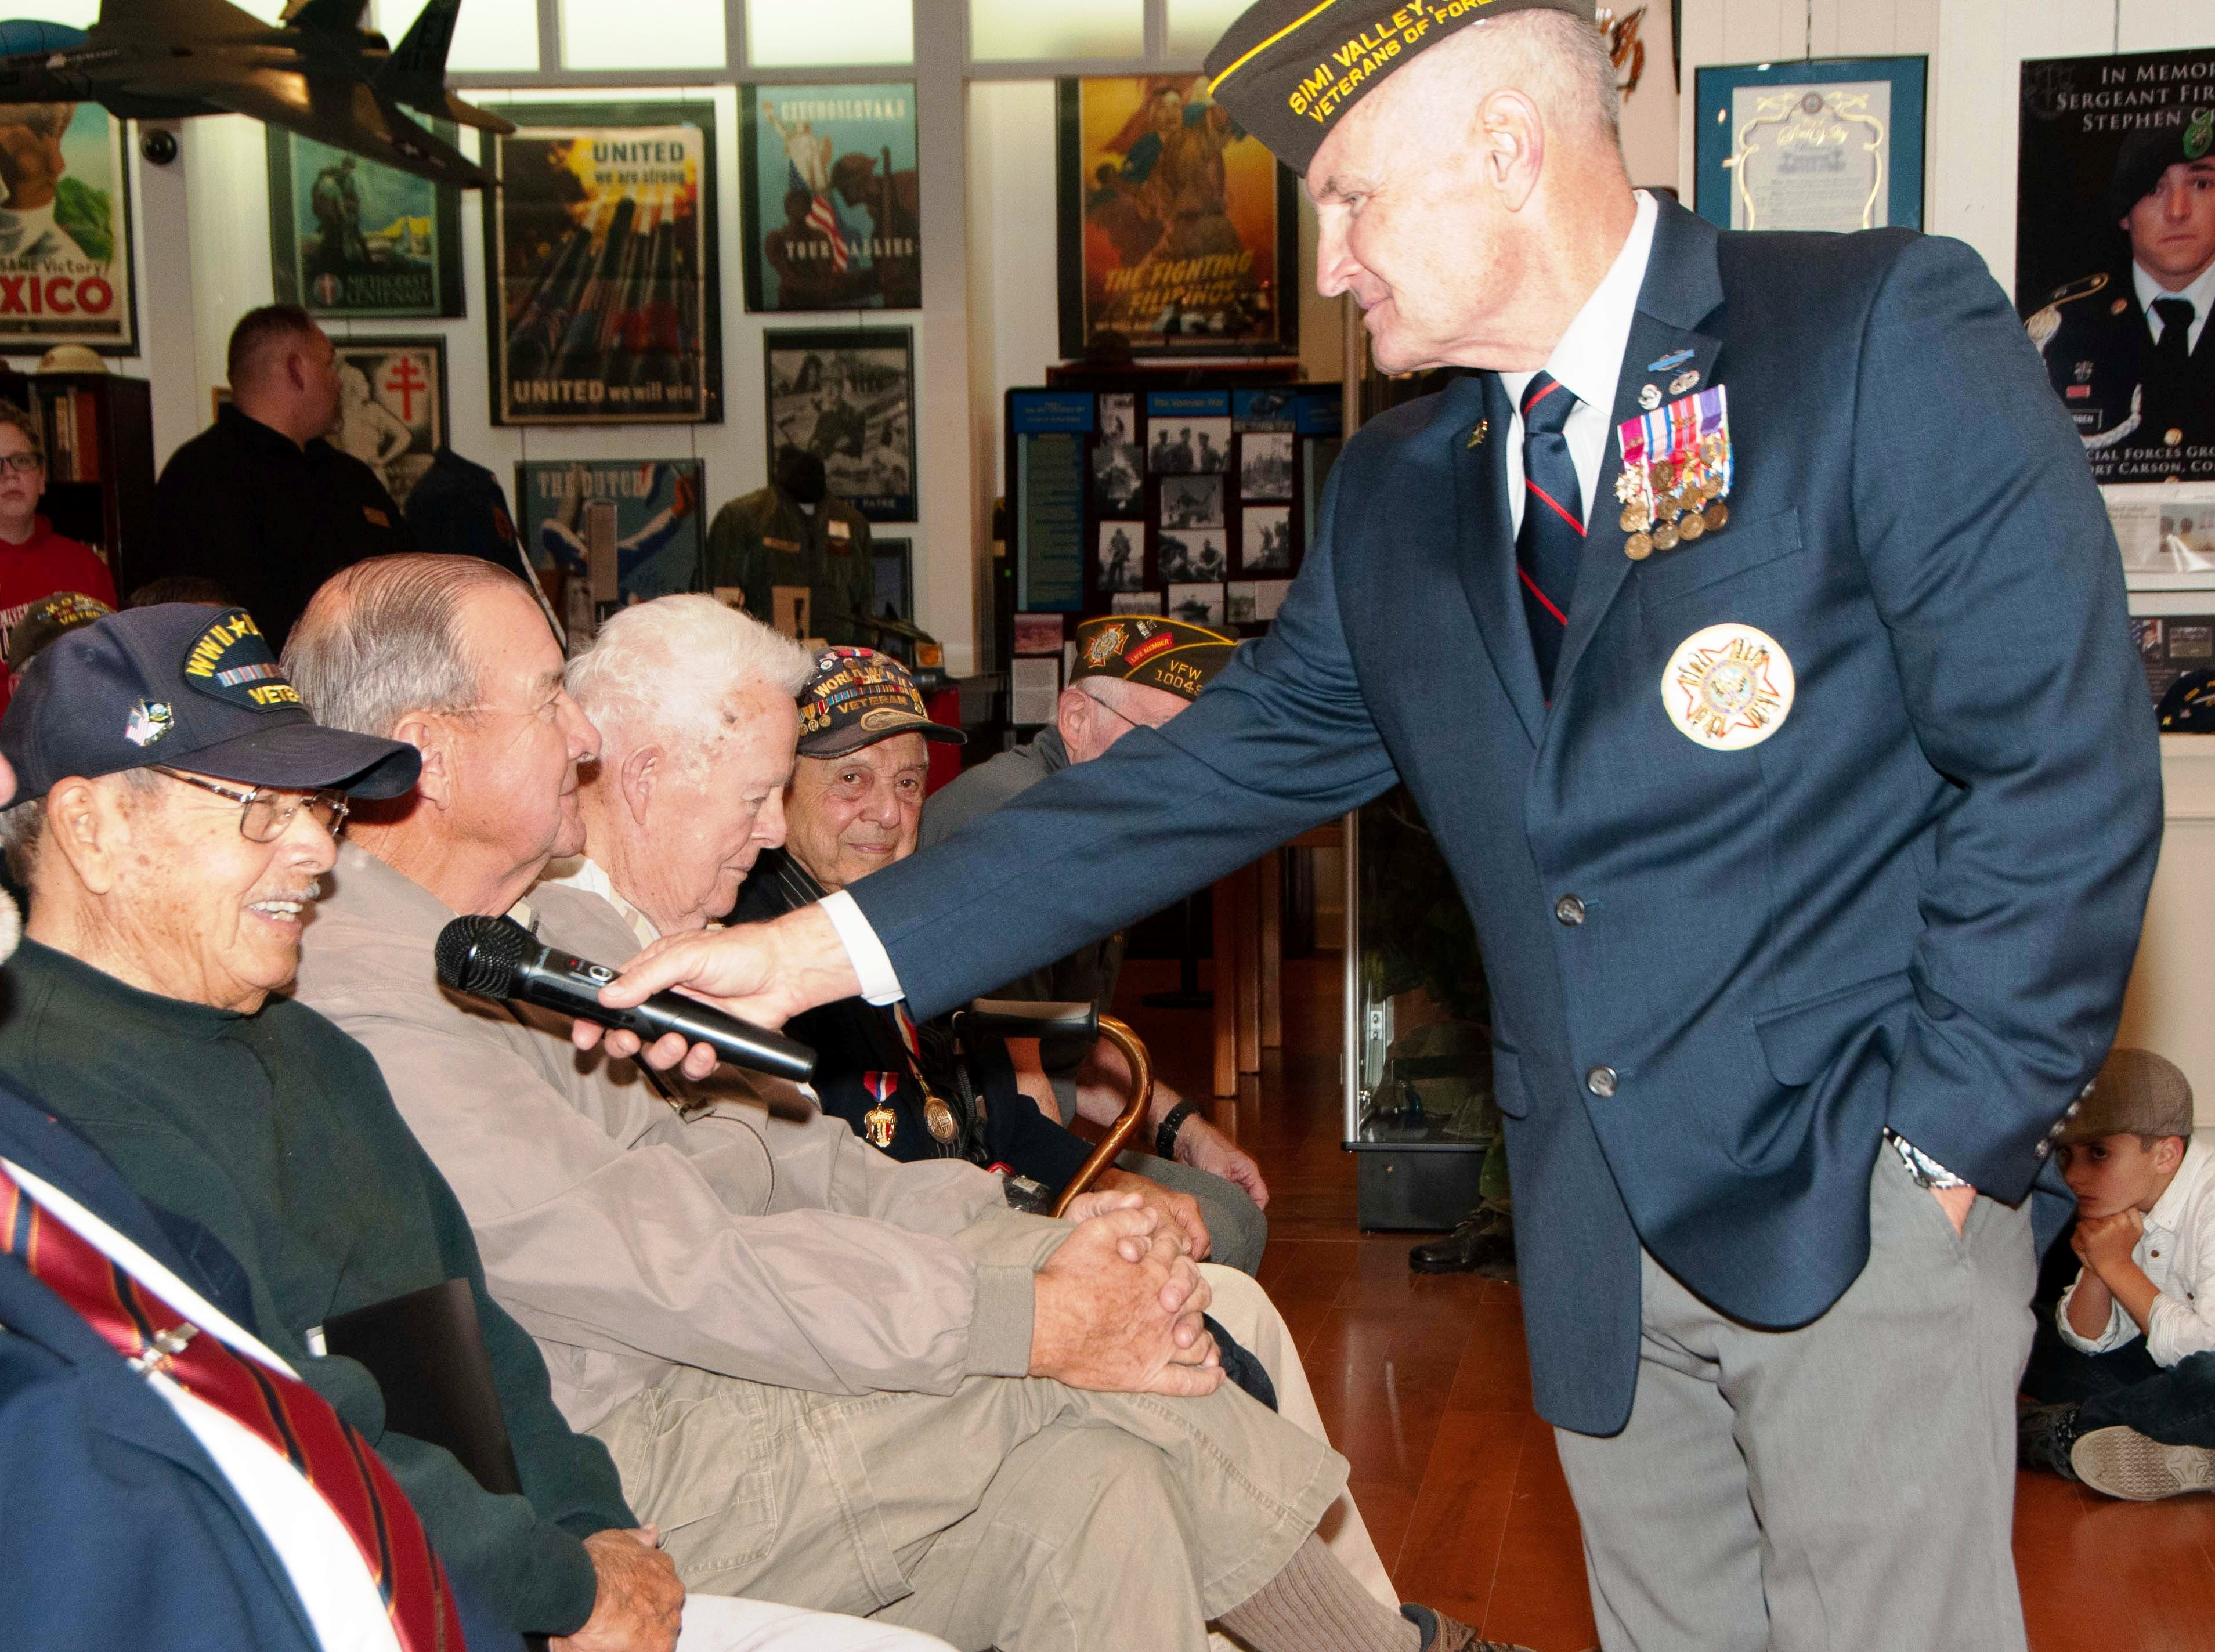 Retired U.S. Army Lt. Col. Martin Spann passes the microphone during a commemoration of the 77th anniversary of the attack at Pearl Harbor, Hawaii. Spann was the emcee for the event which took place at the VFW Museum of Military History in Simi Valley on Dec. 7.